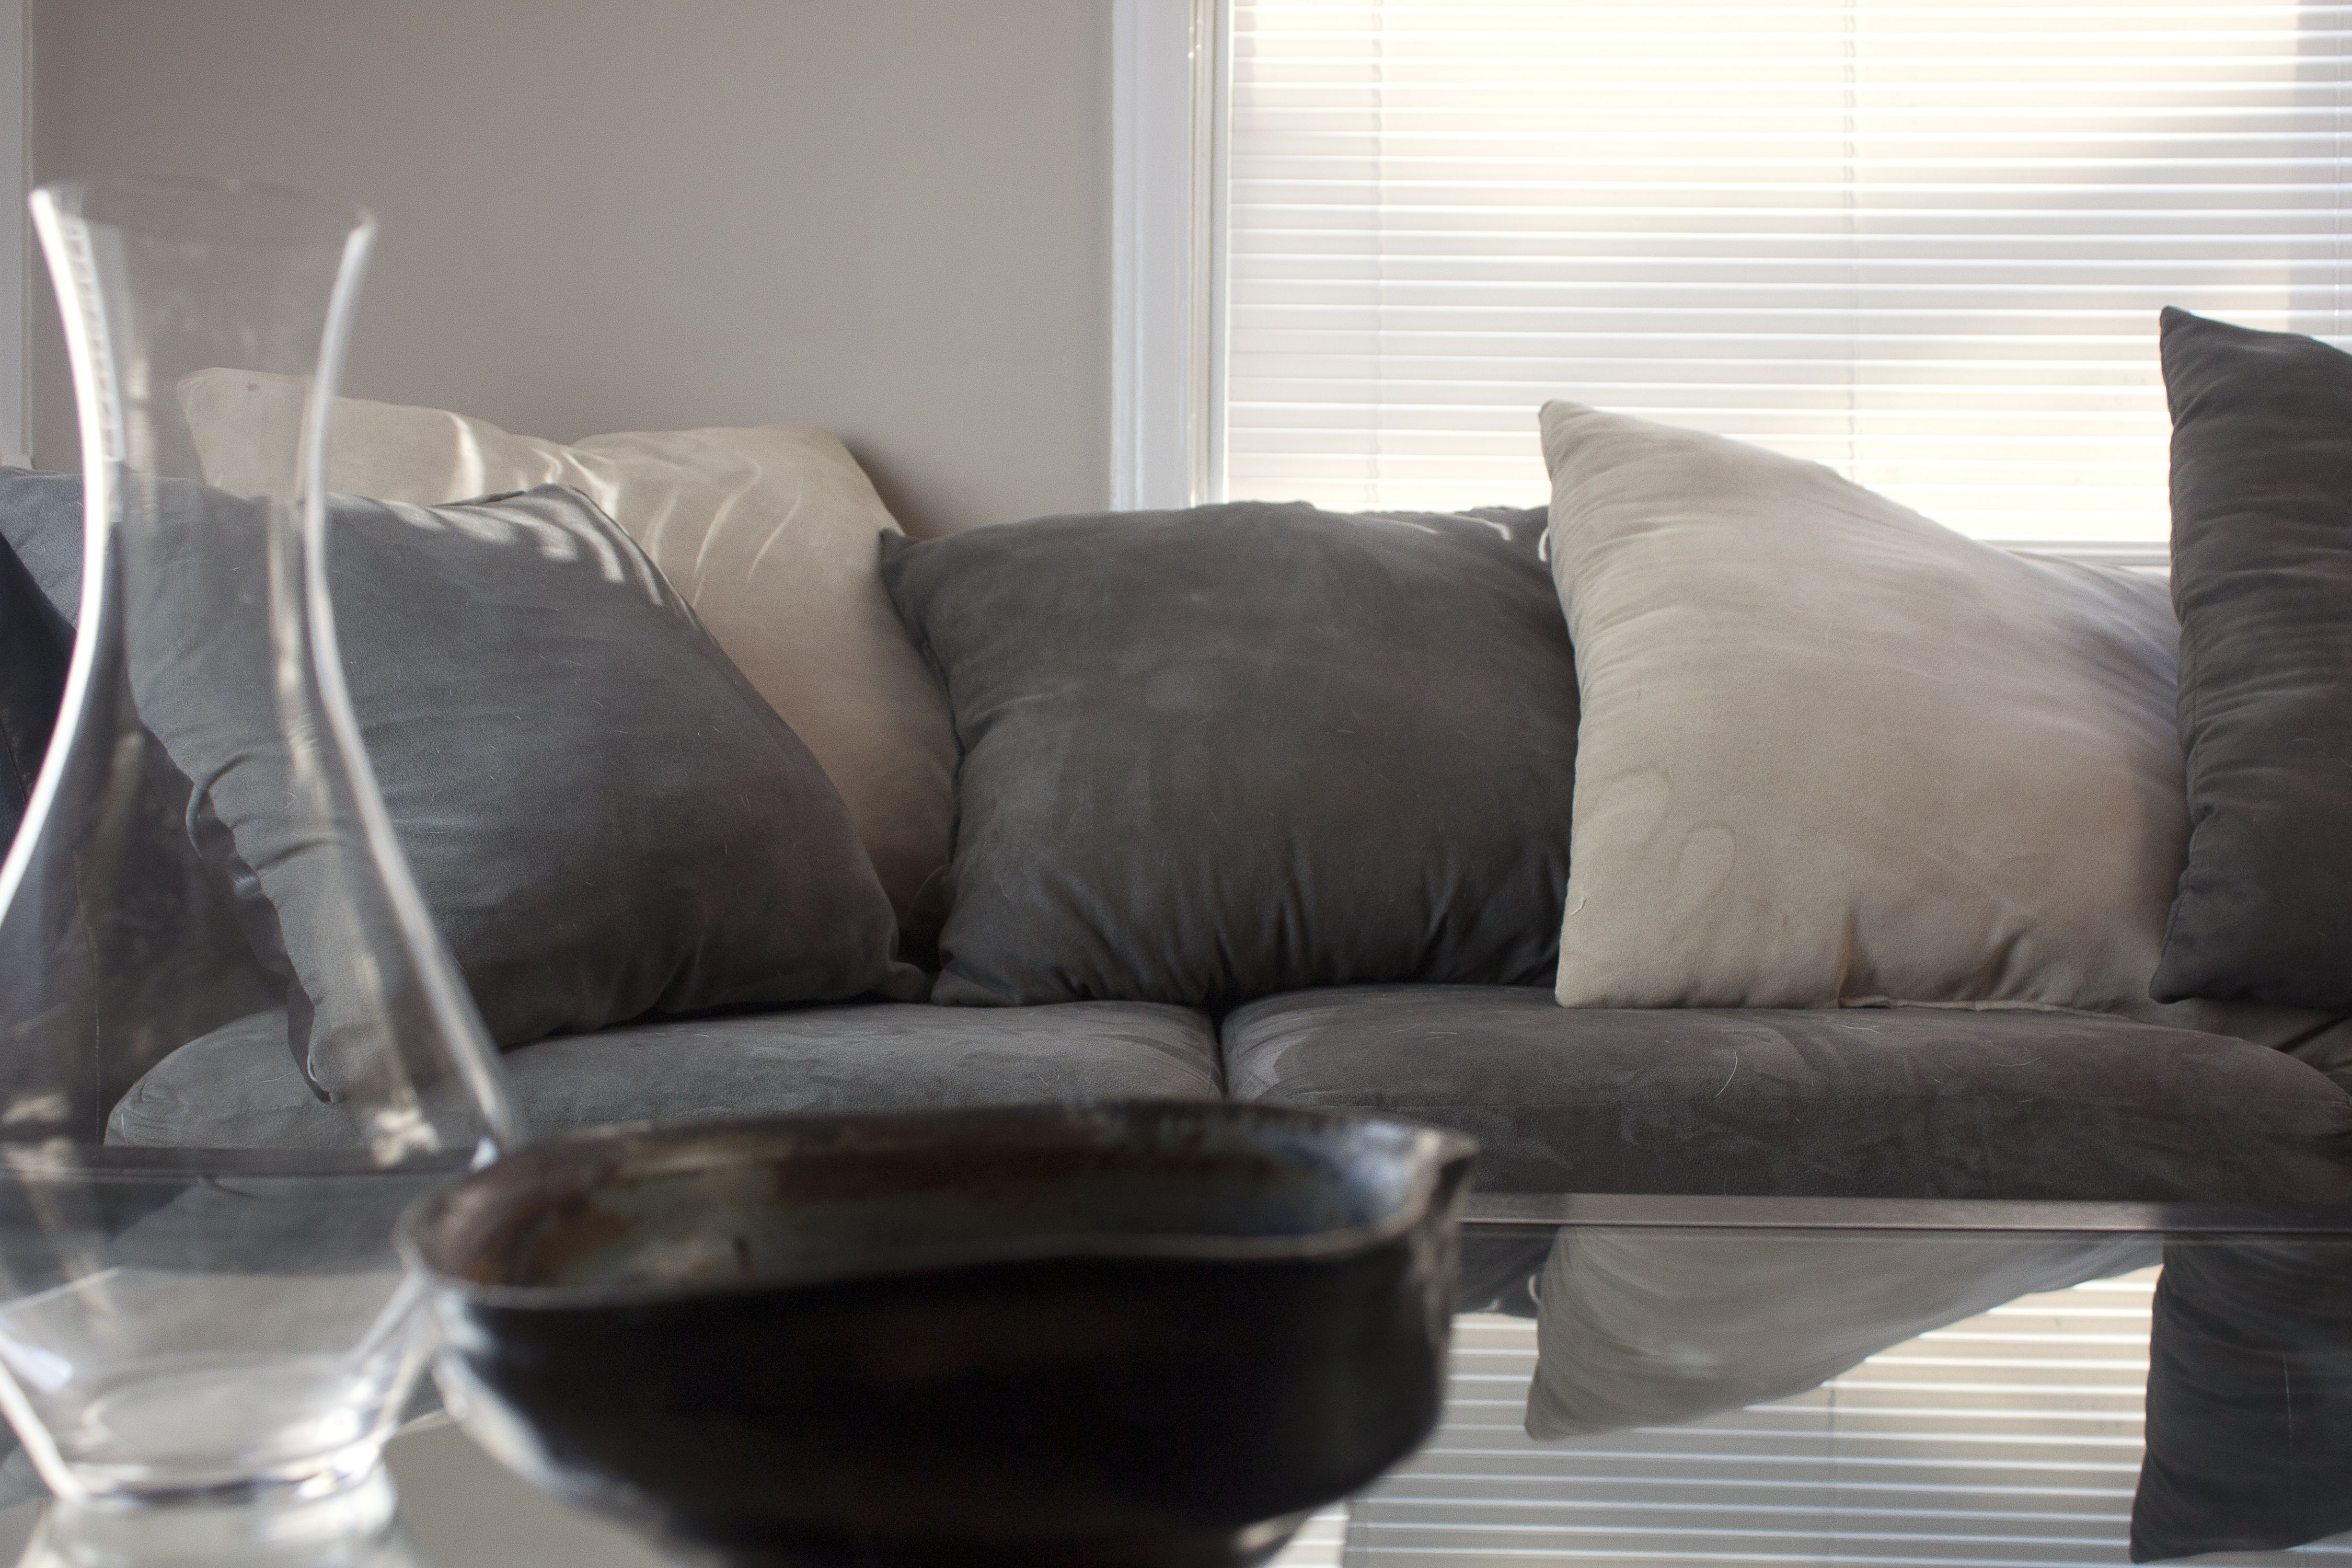 Faux Suede Sofa Cleaner Bedroom Sofas In Karachi How To Clean Furniture Homes U Make